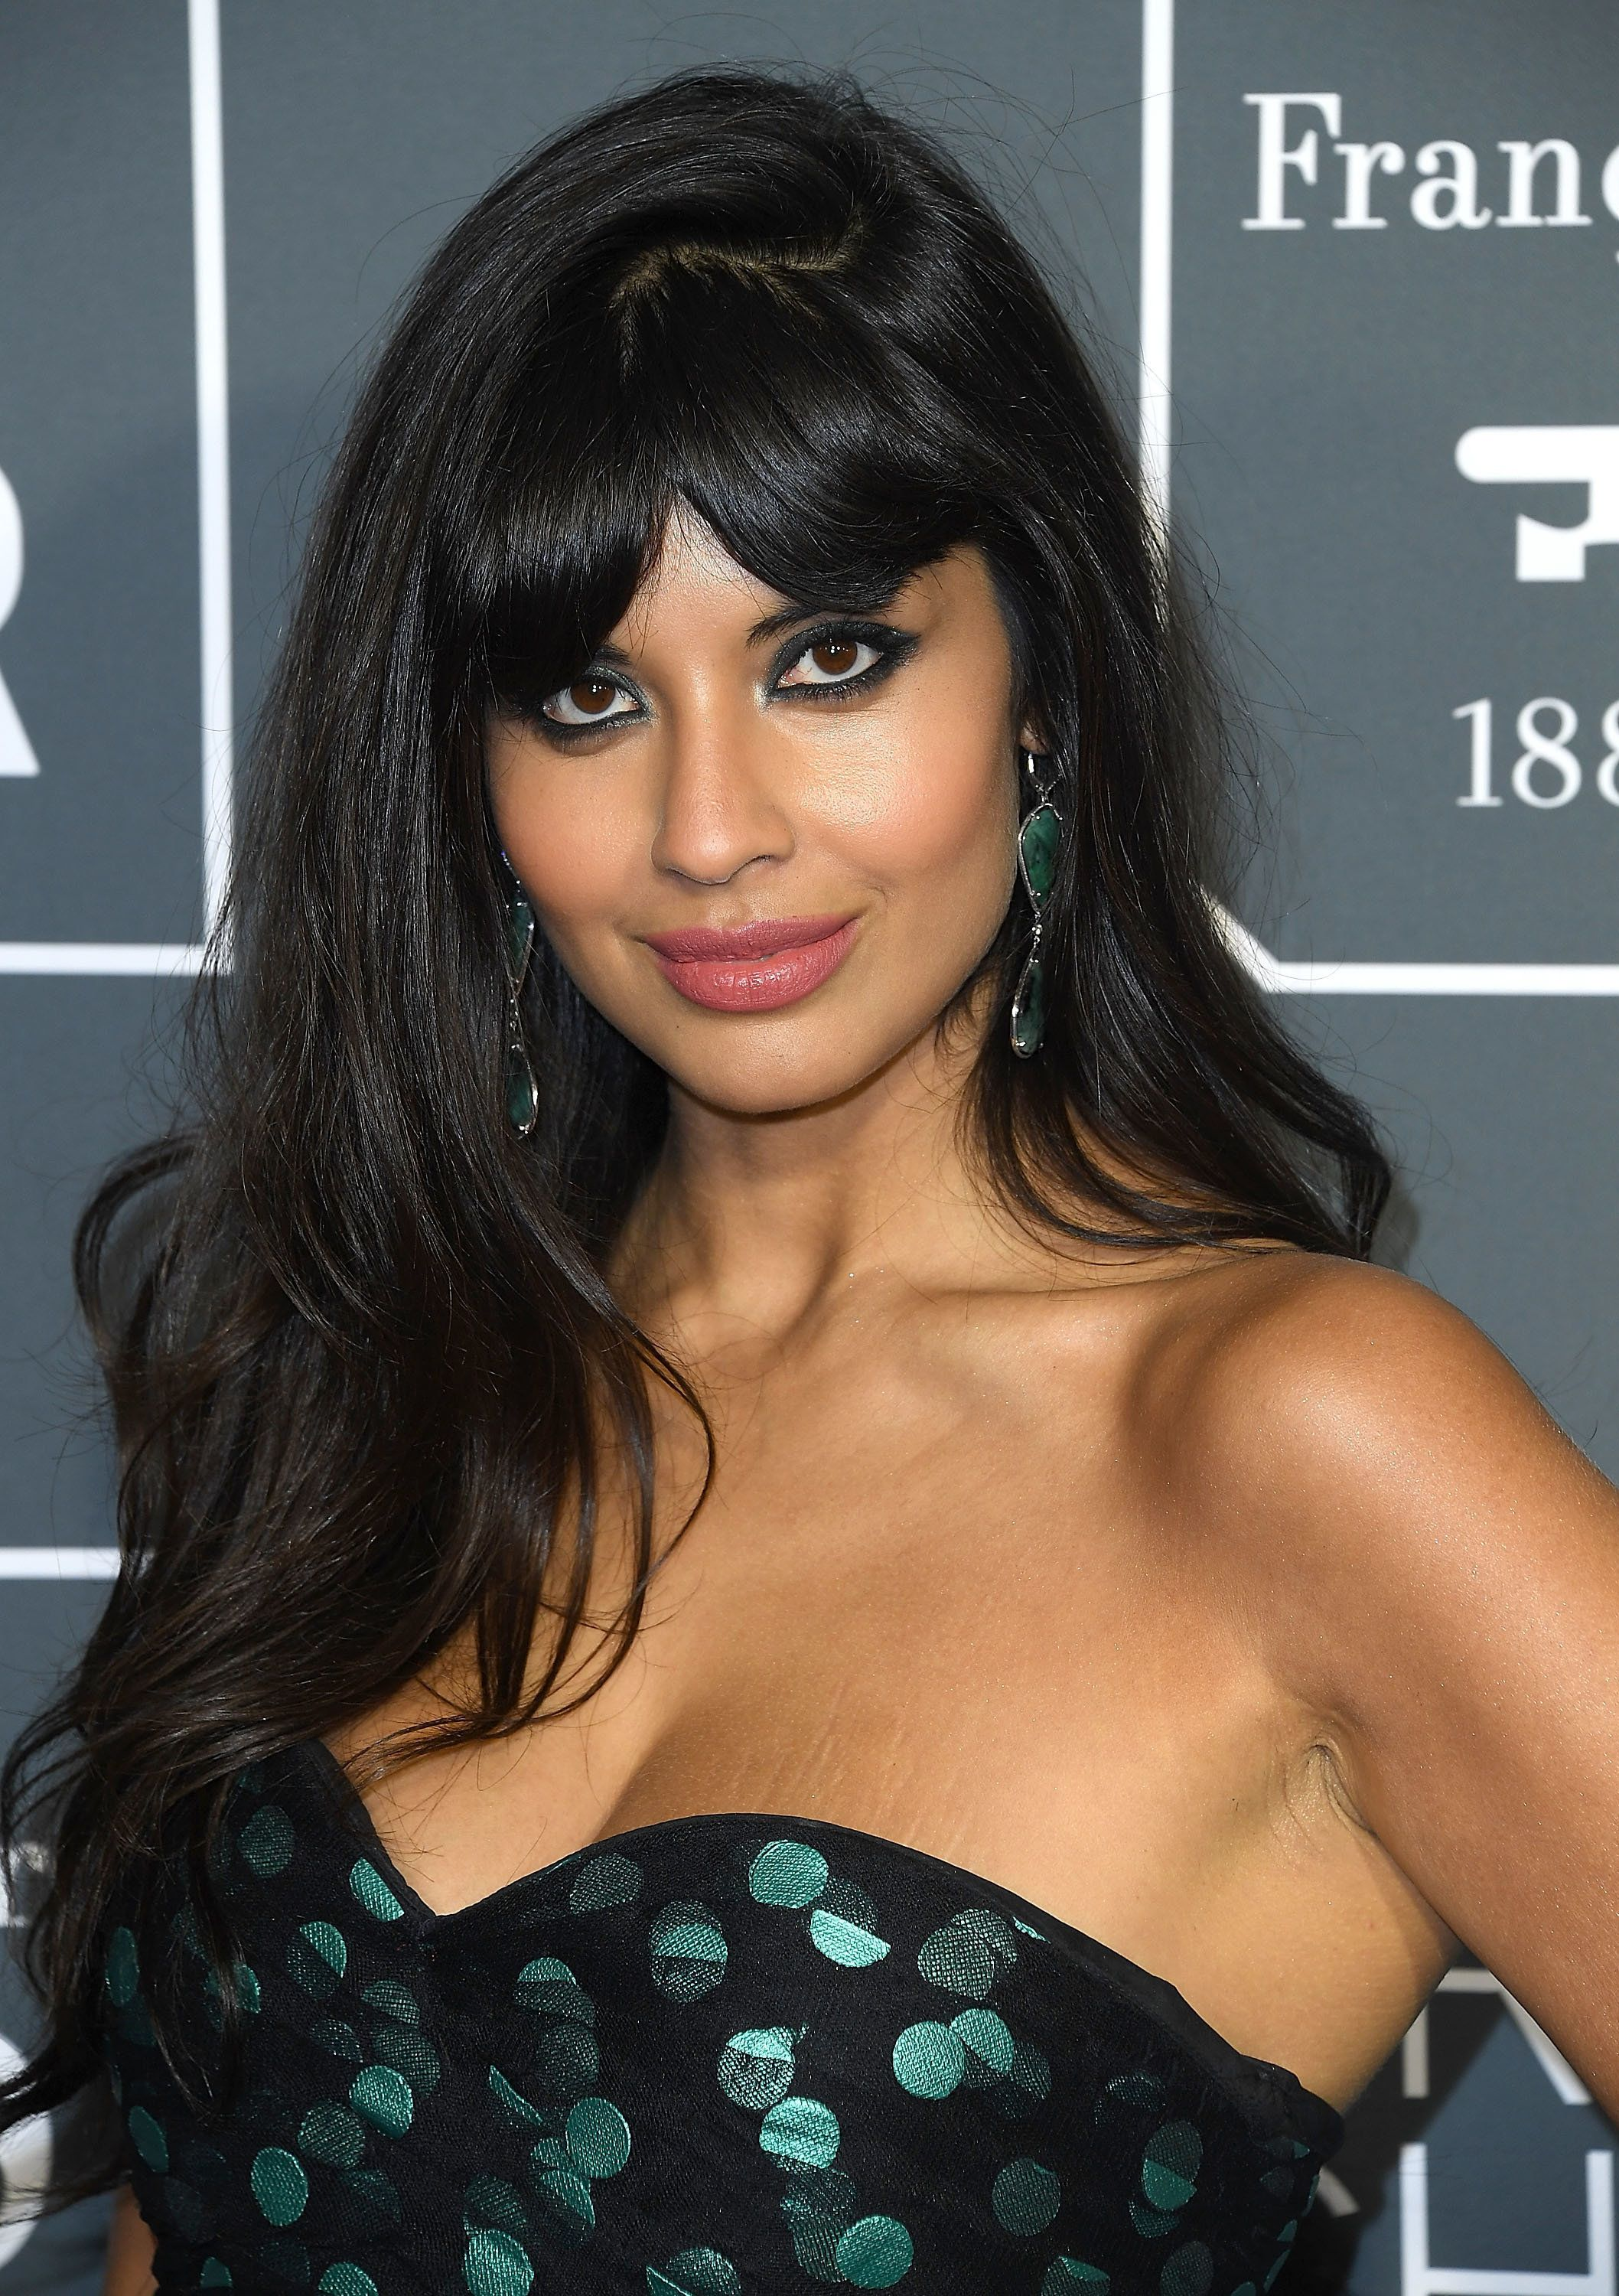 'MESSED UP': Avon Pulls Marketing Materials After Jameela Jamil Slams Company For Shaming